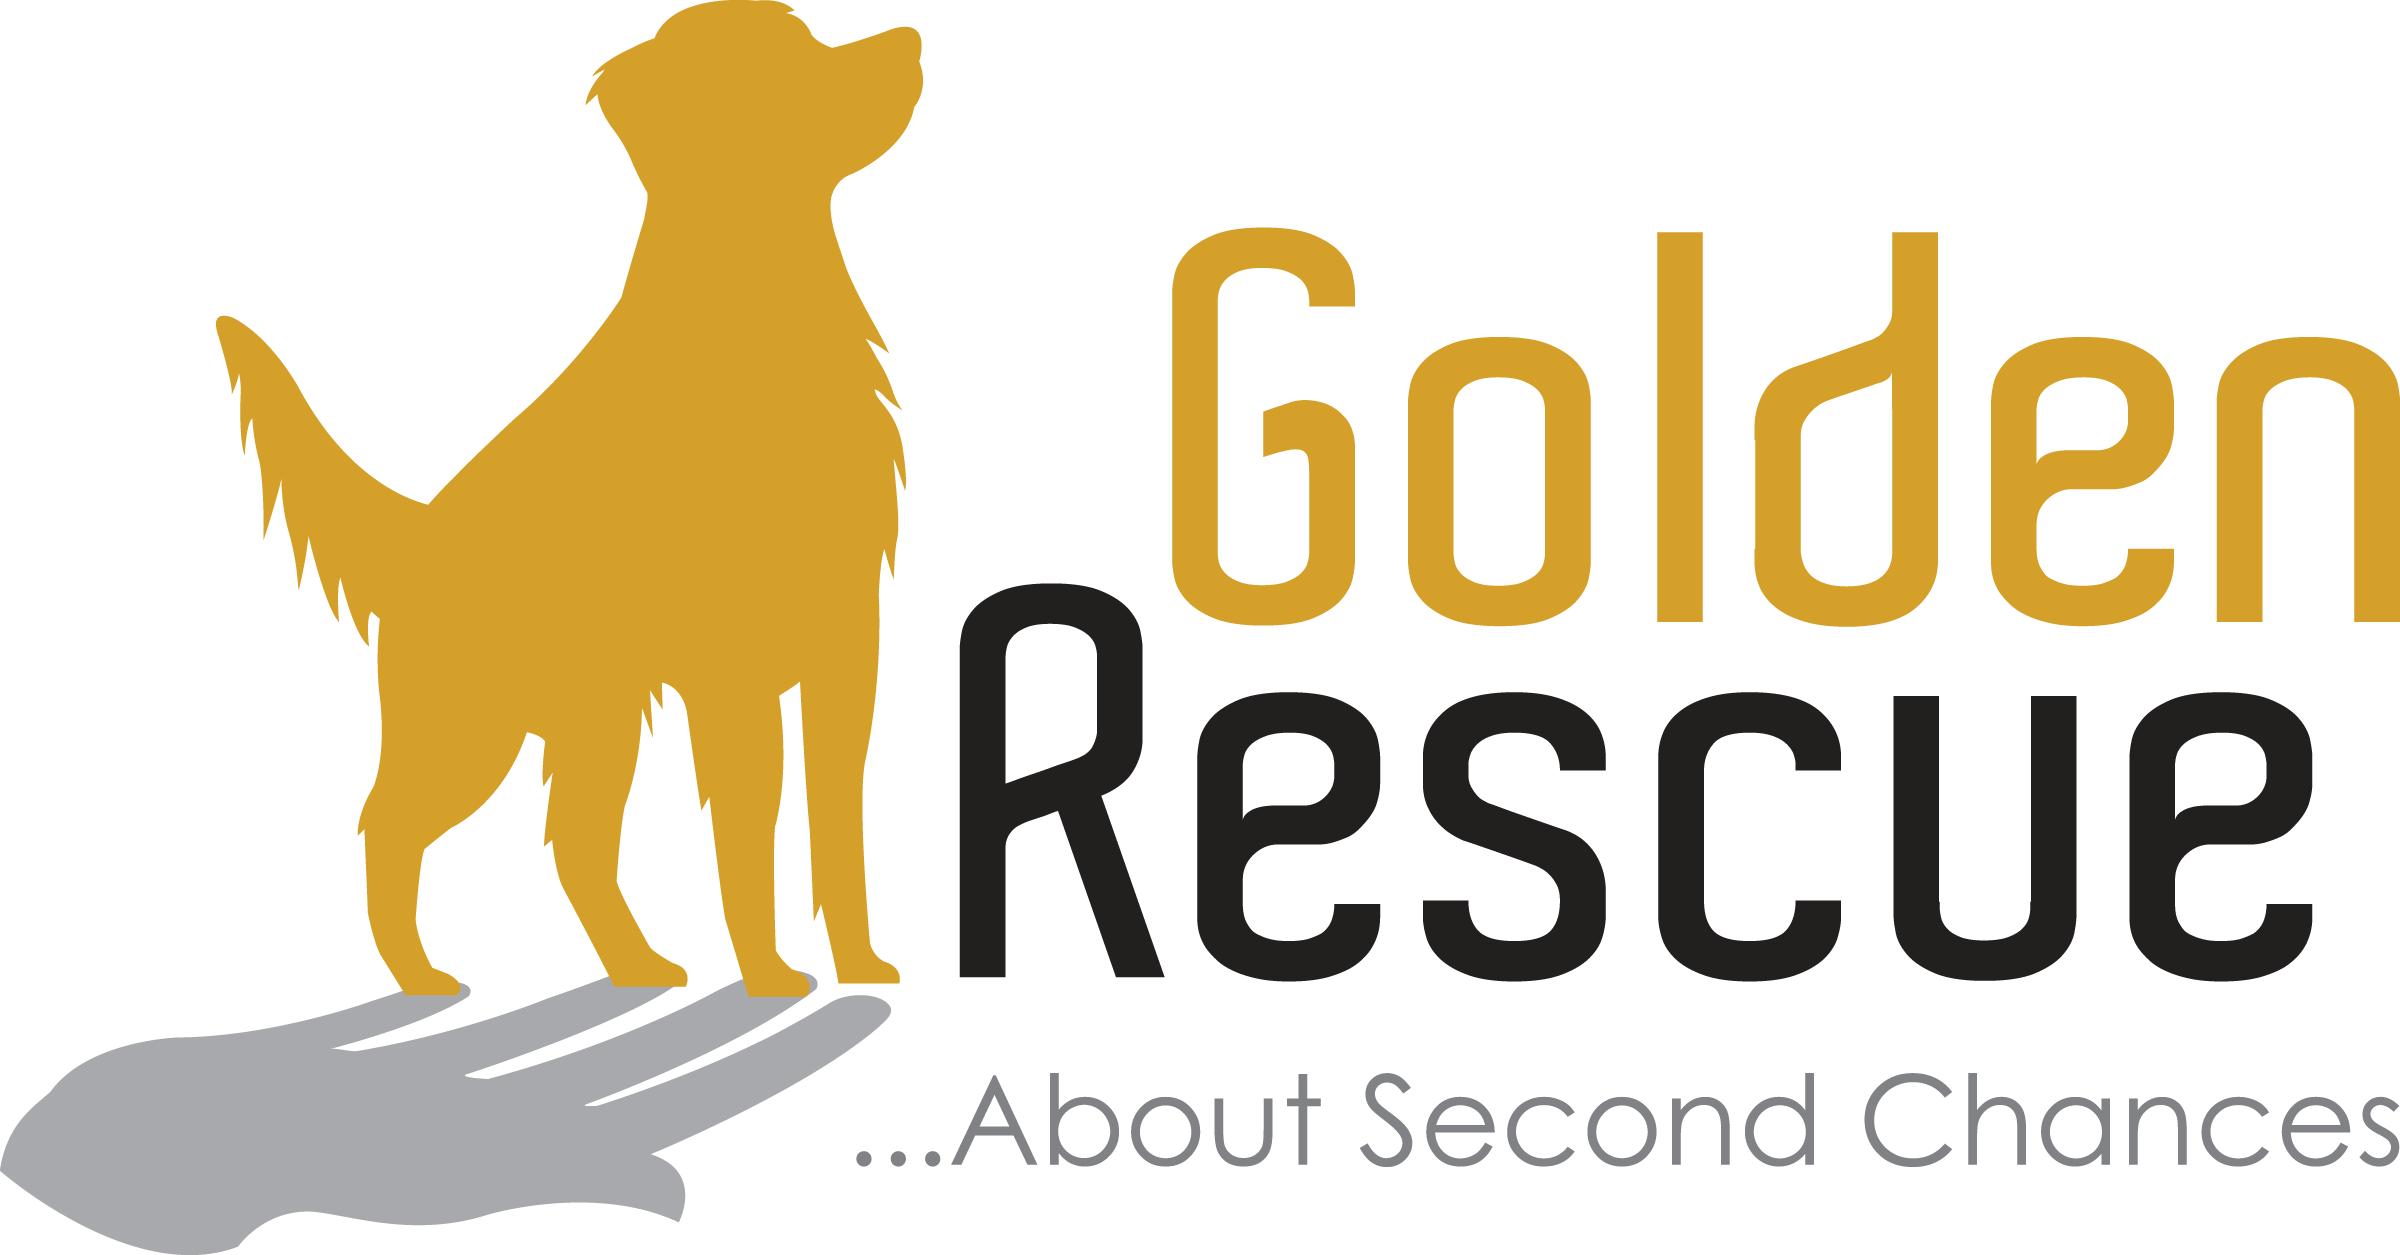 Golden Rescue - About Second Chances